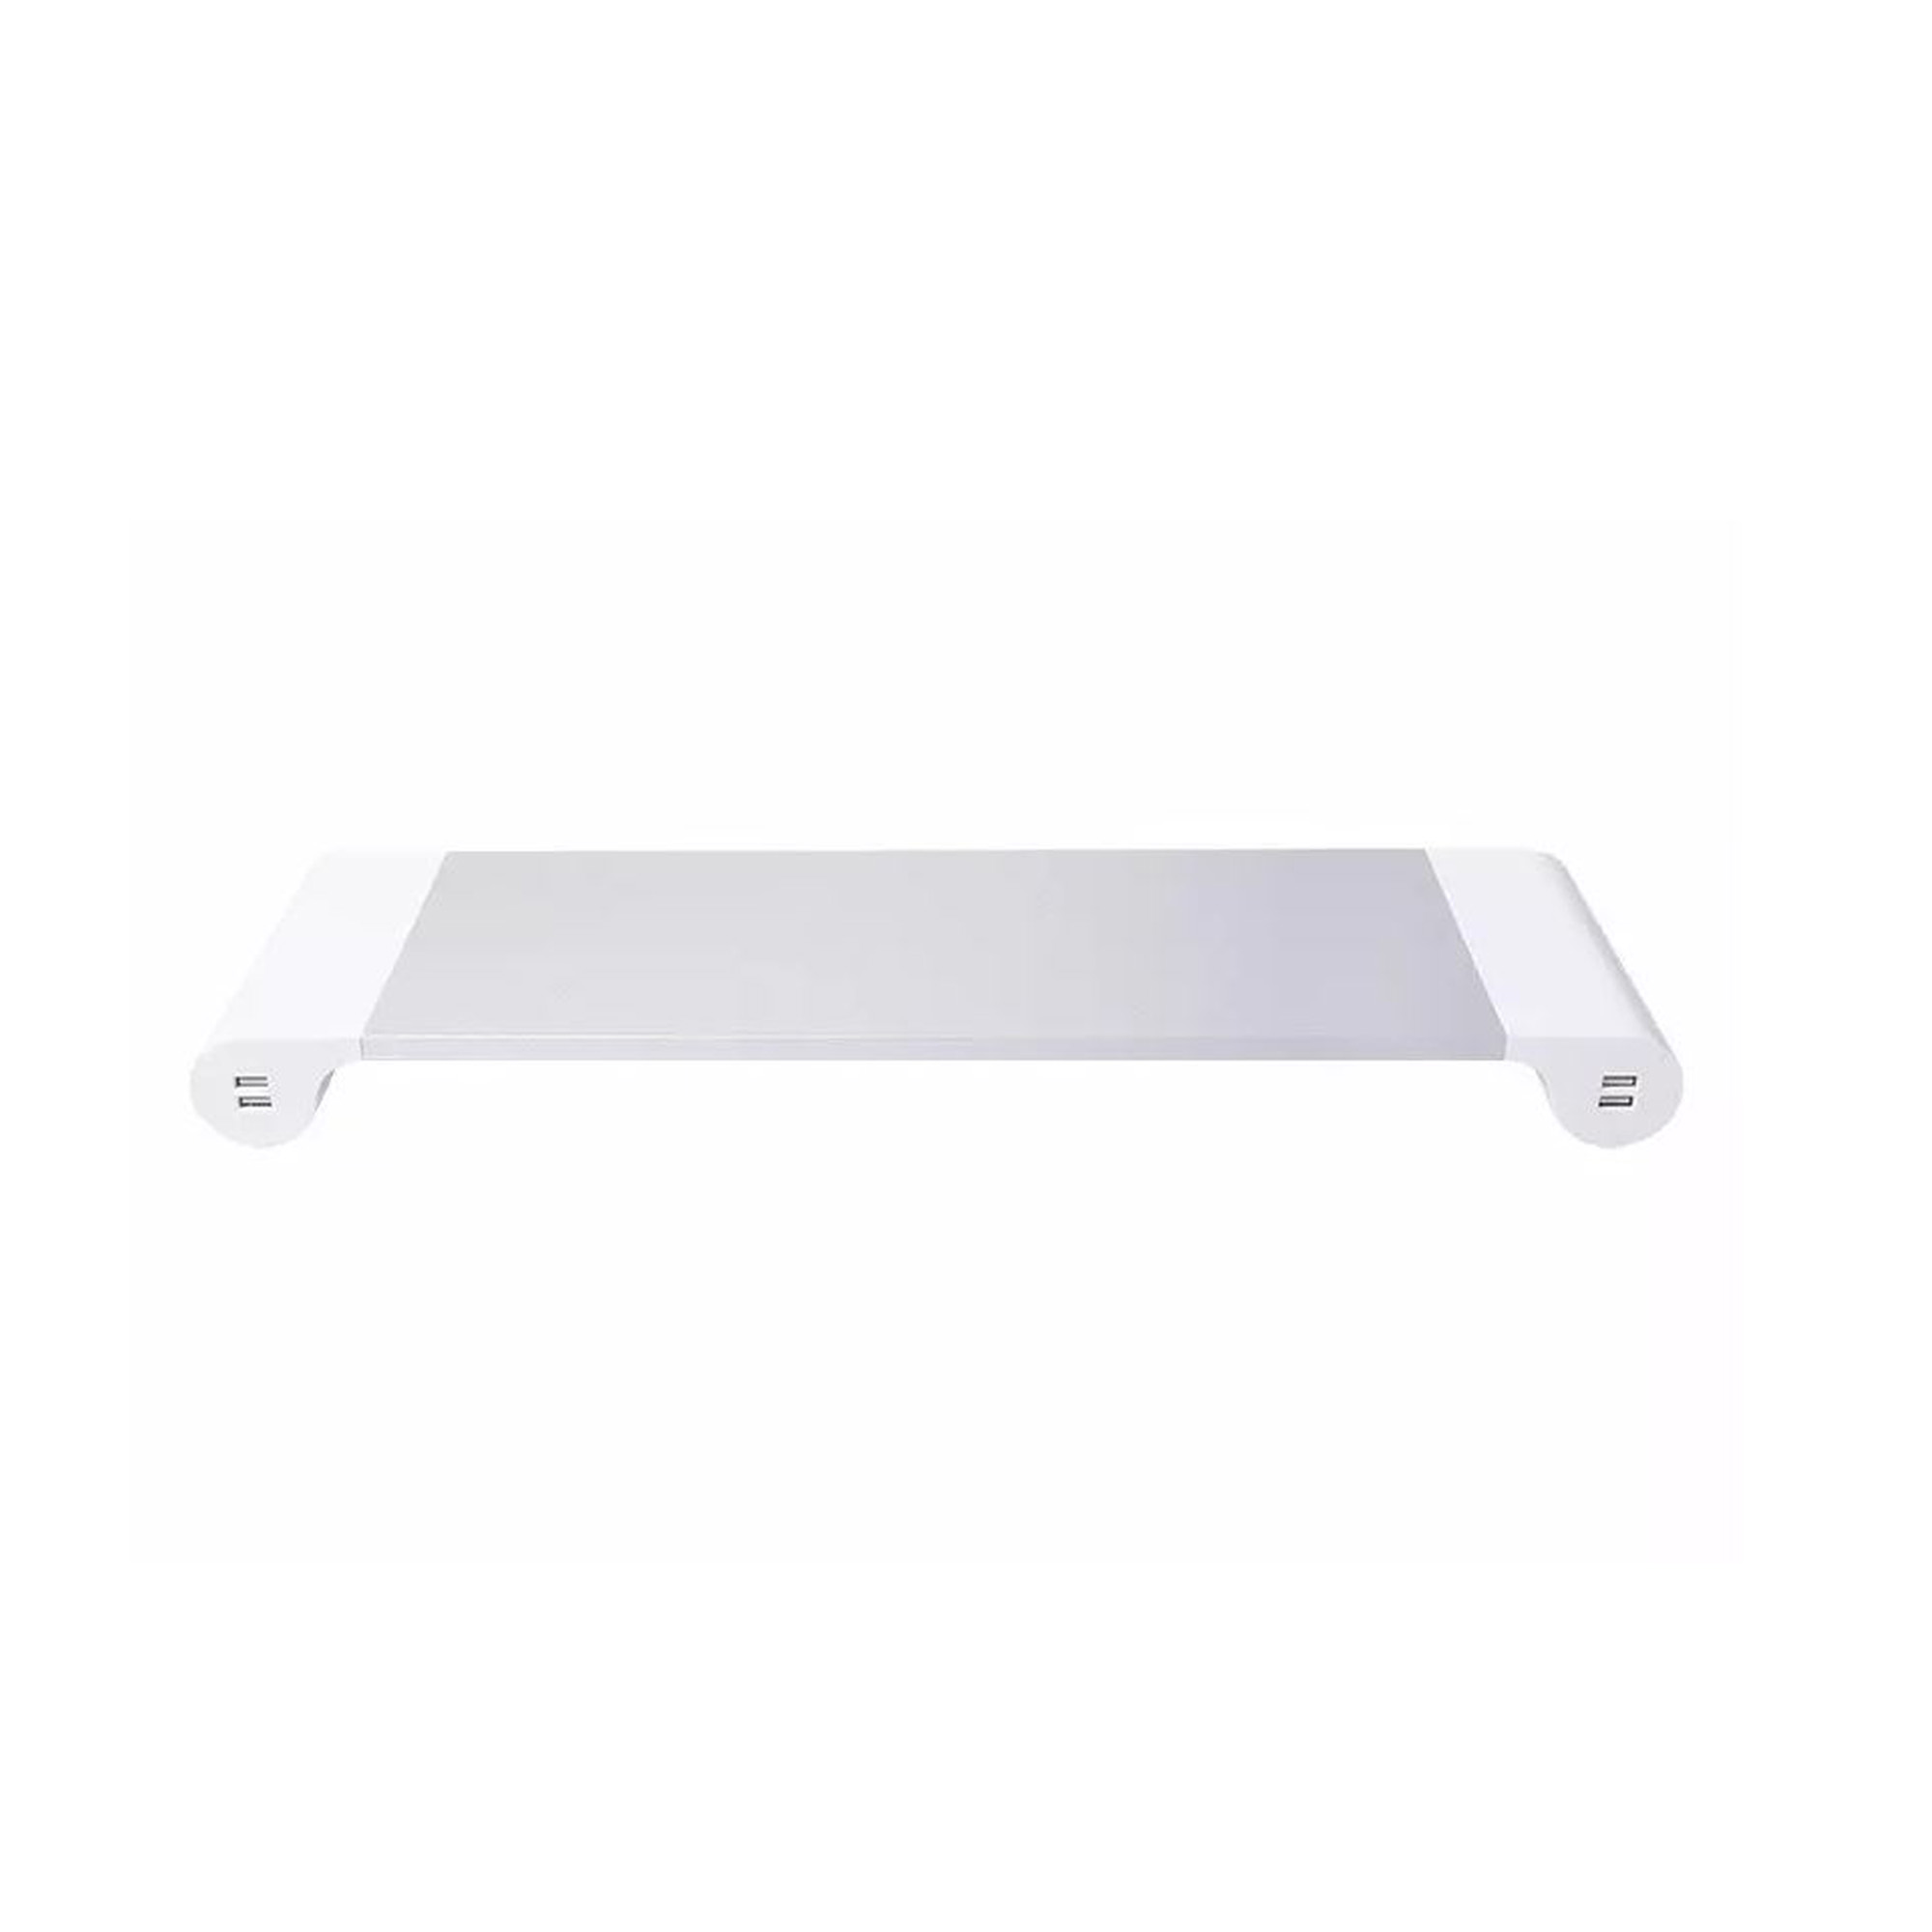 IAG-Laptop-Stand-With-Usb-Port-1